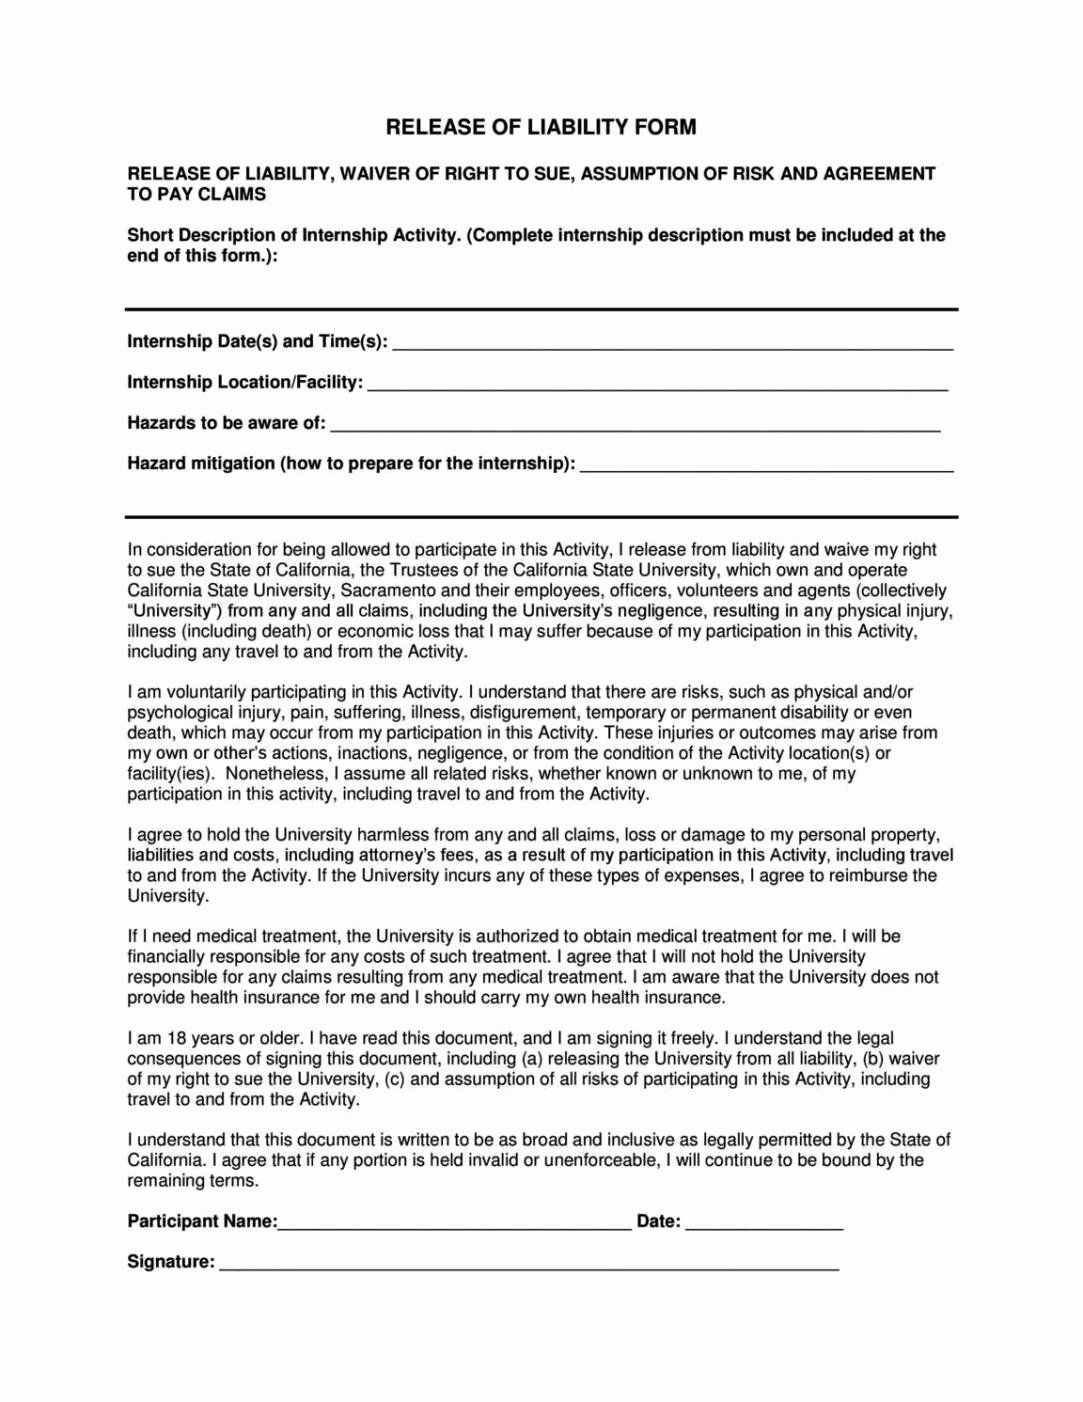 Free General Release Form Template Beautiful General Liability Release Form Template Sampletemplatess Liability General Liability Liability Waiver